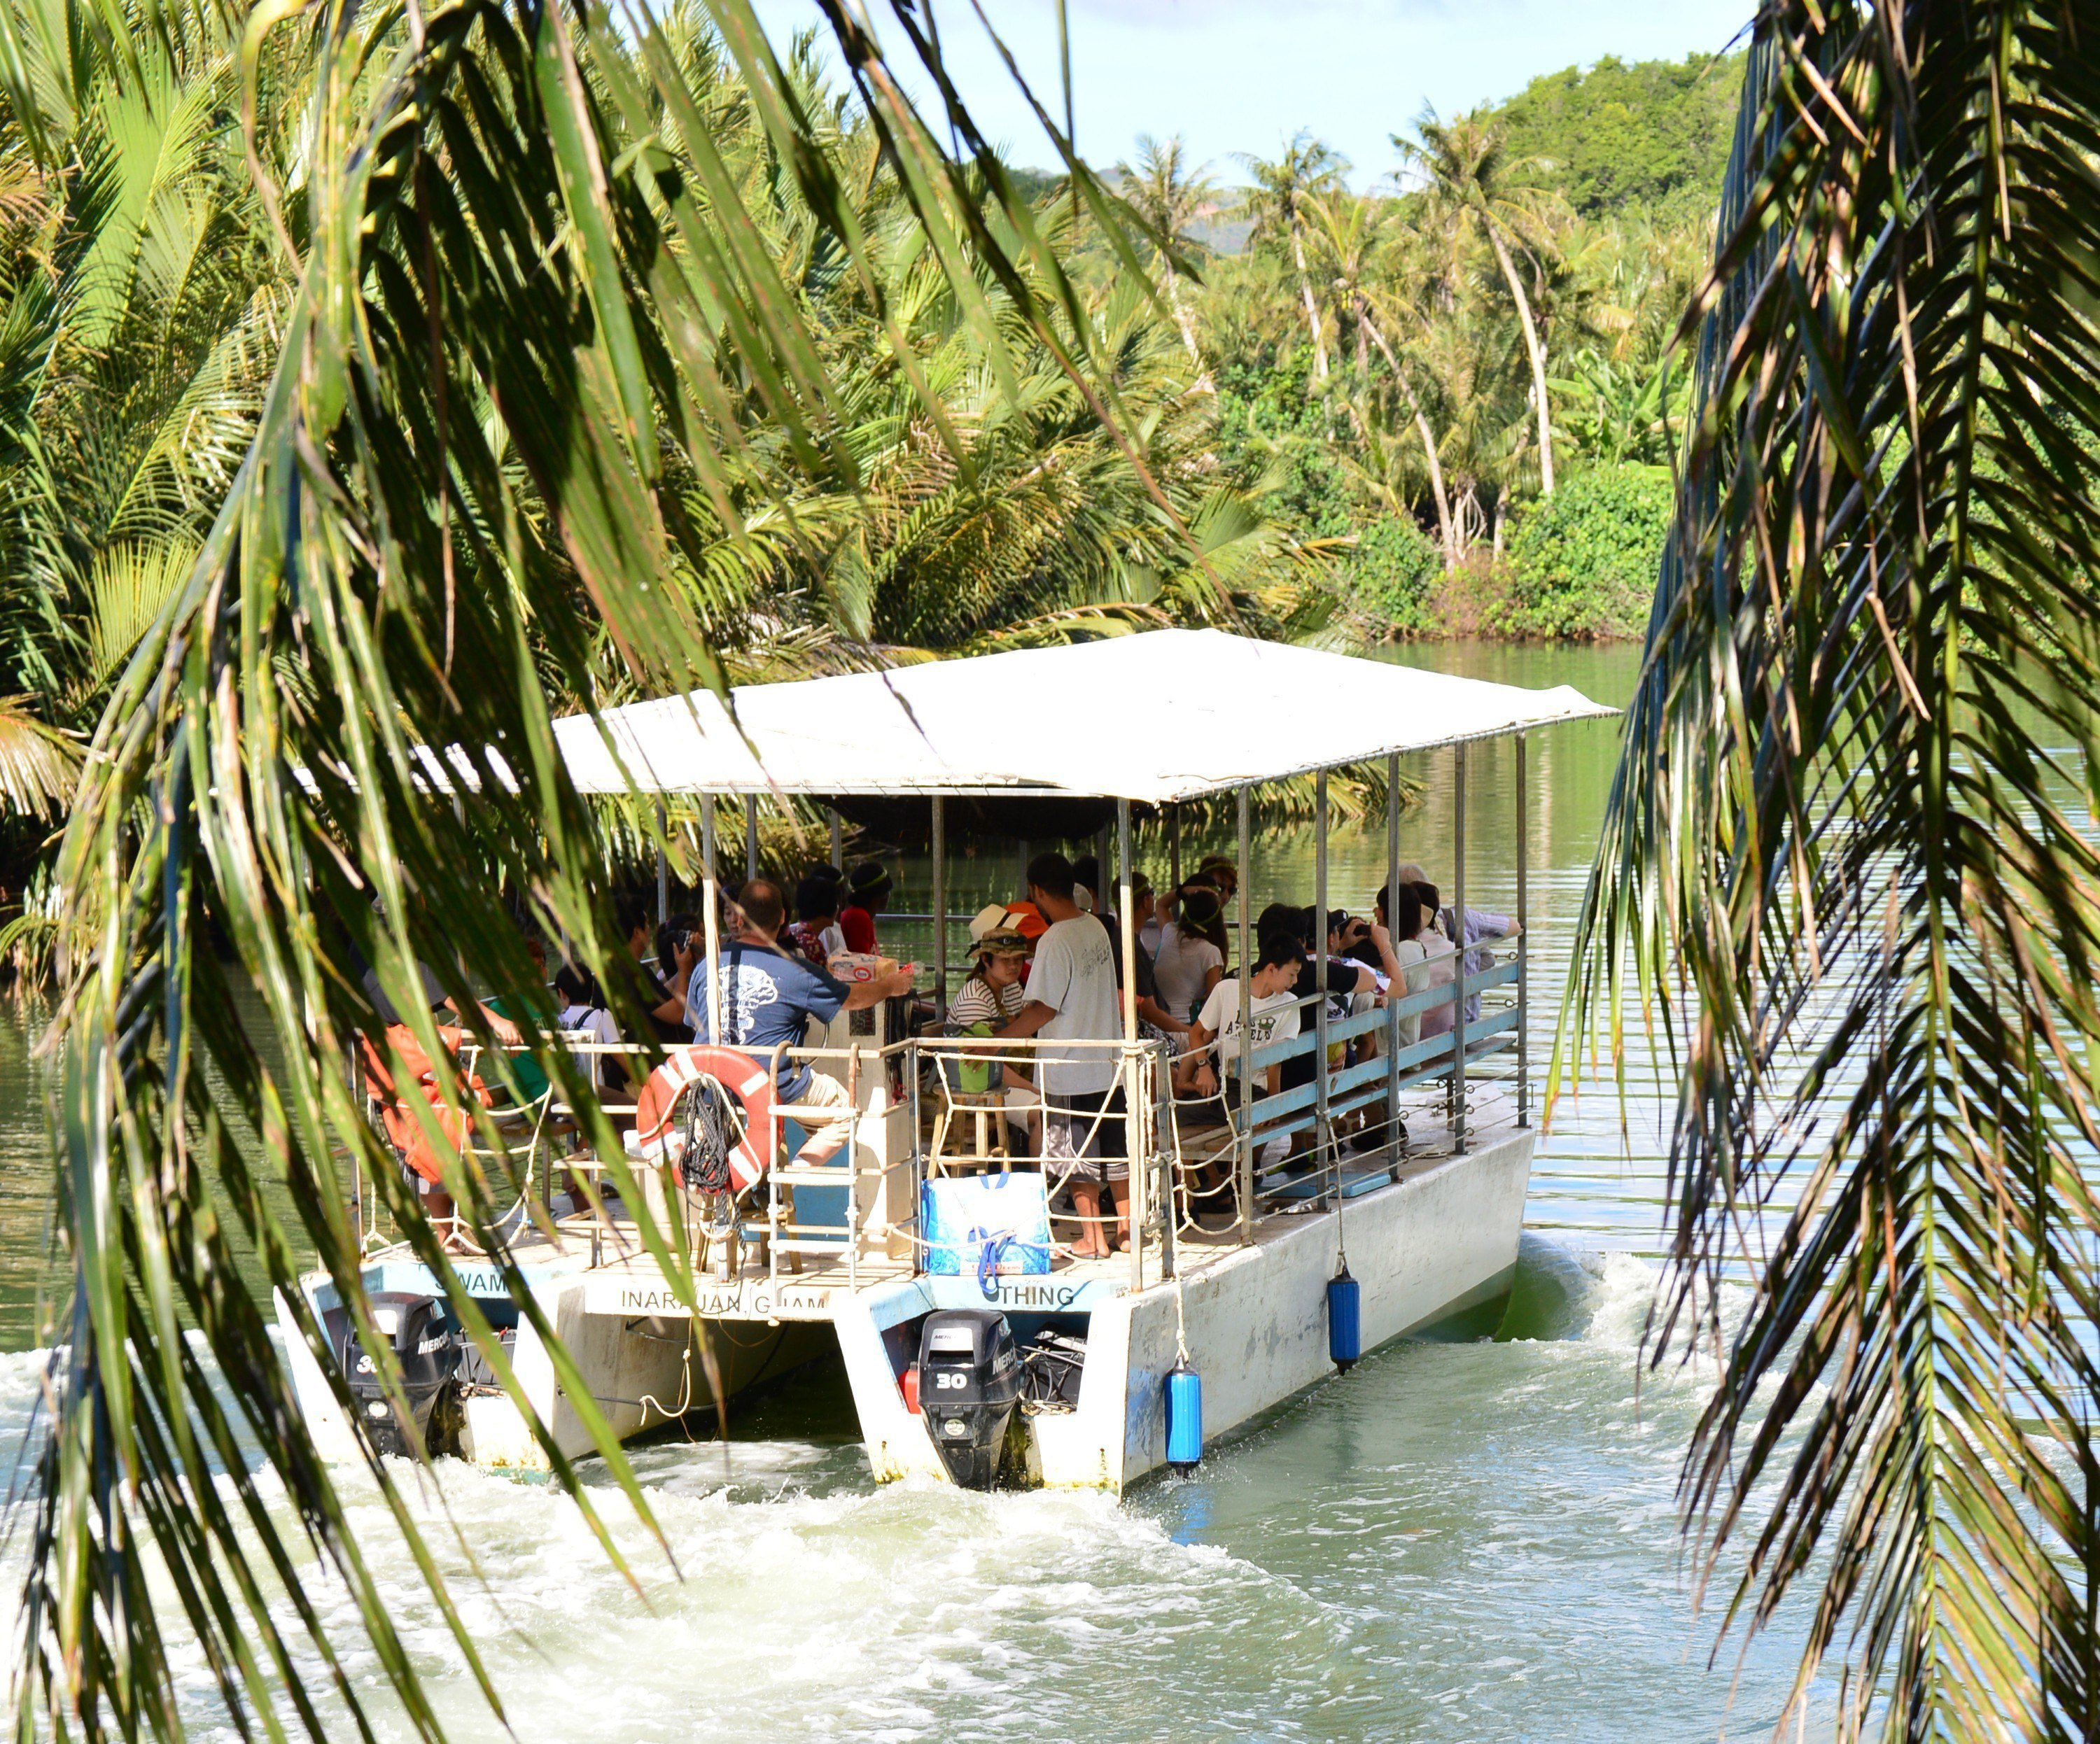 Guam, Adventure River Cruise, Things to Do, Tours, Activities, Adventure, Valley of the Latte